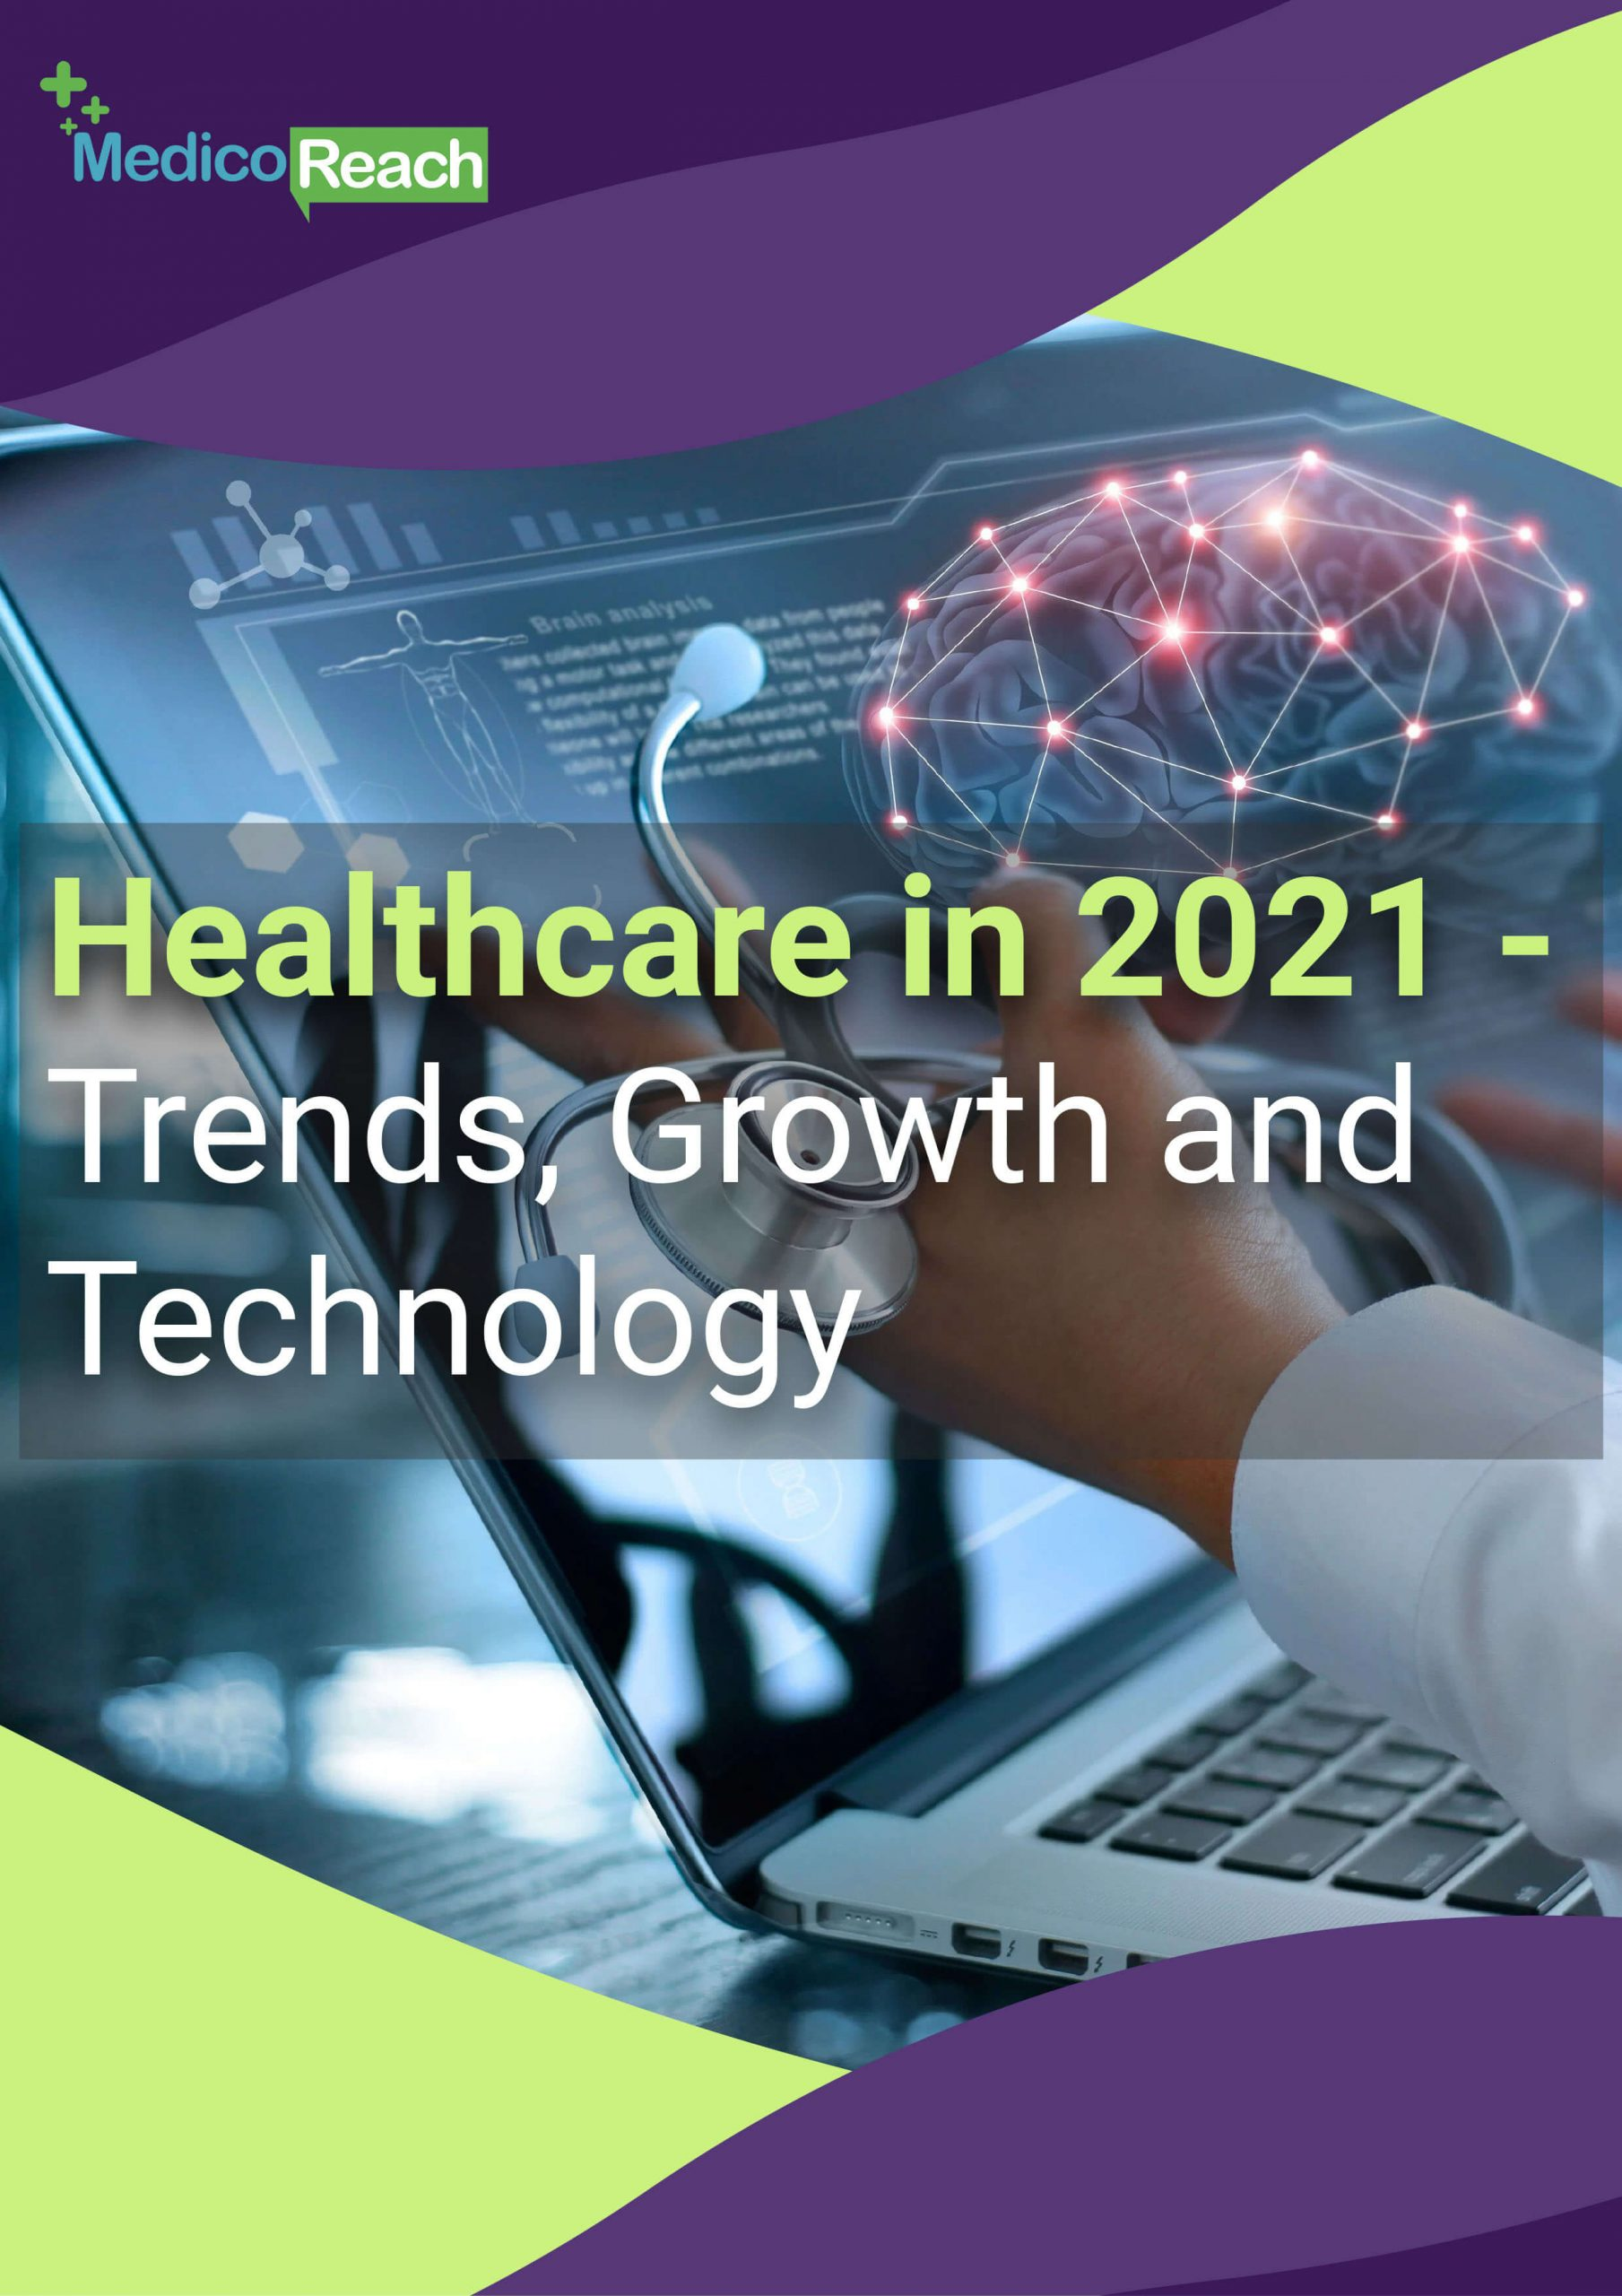 Healthcare in 2021 - Trends, Growth and Technology Banner